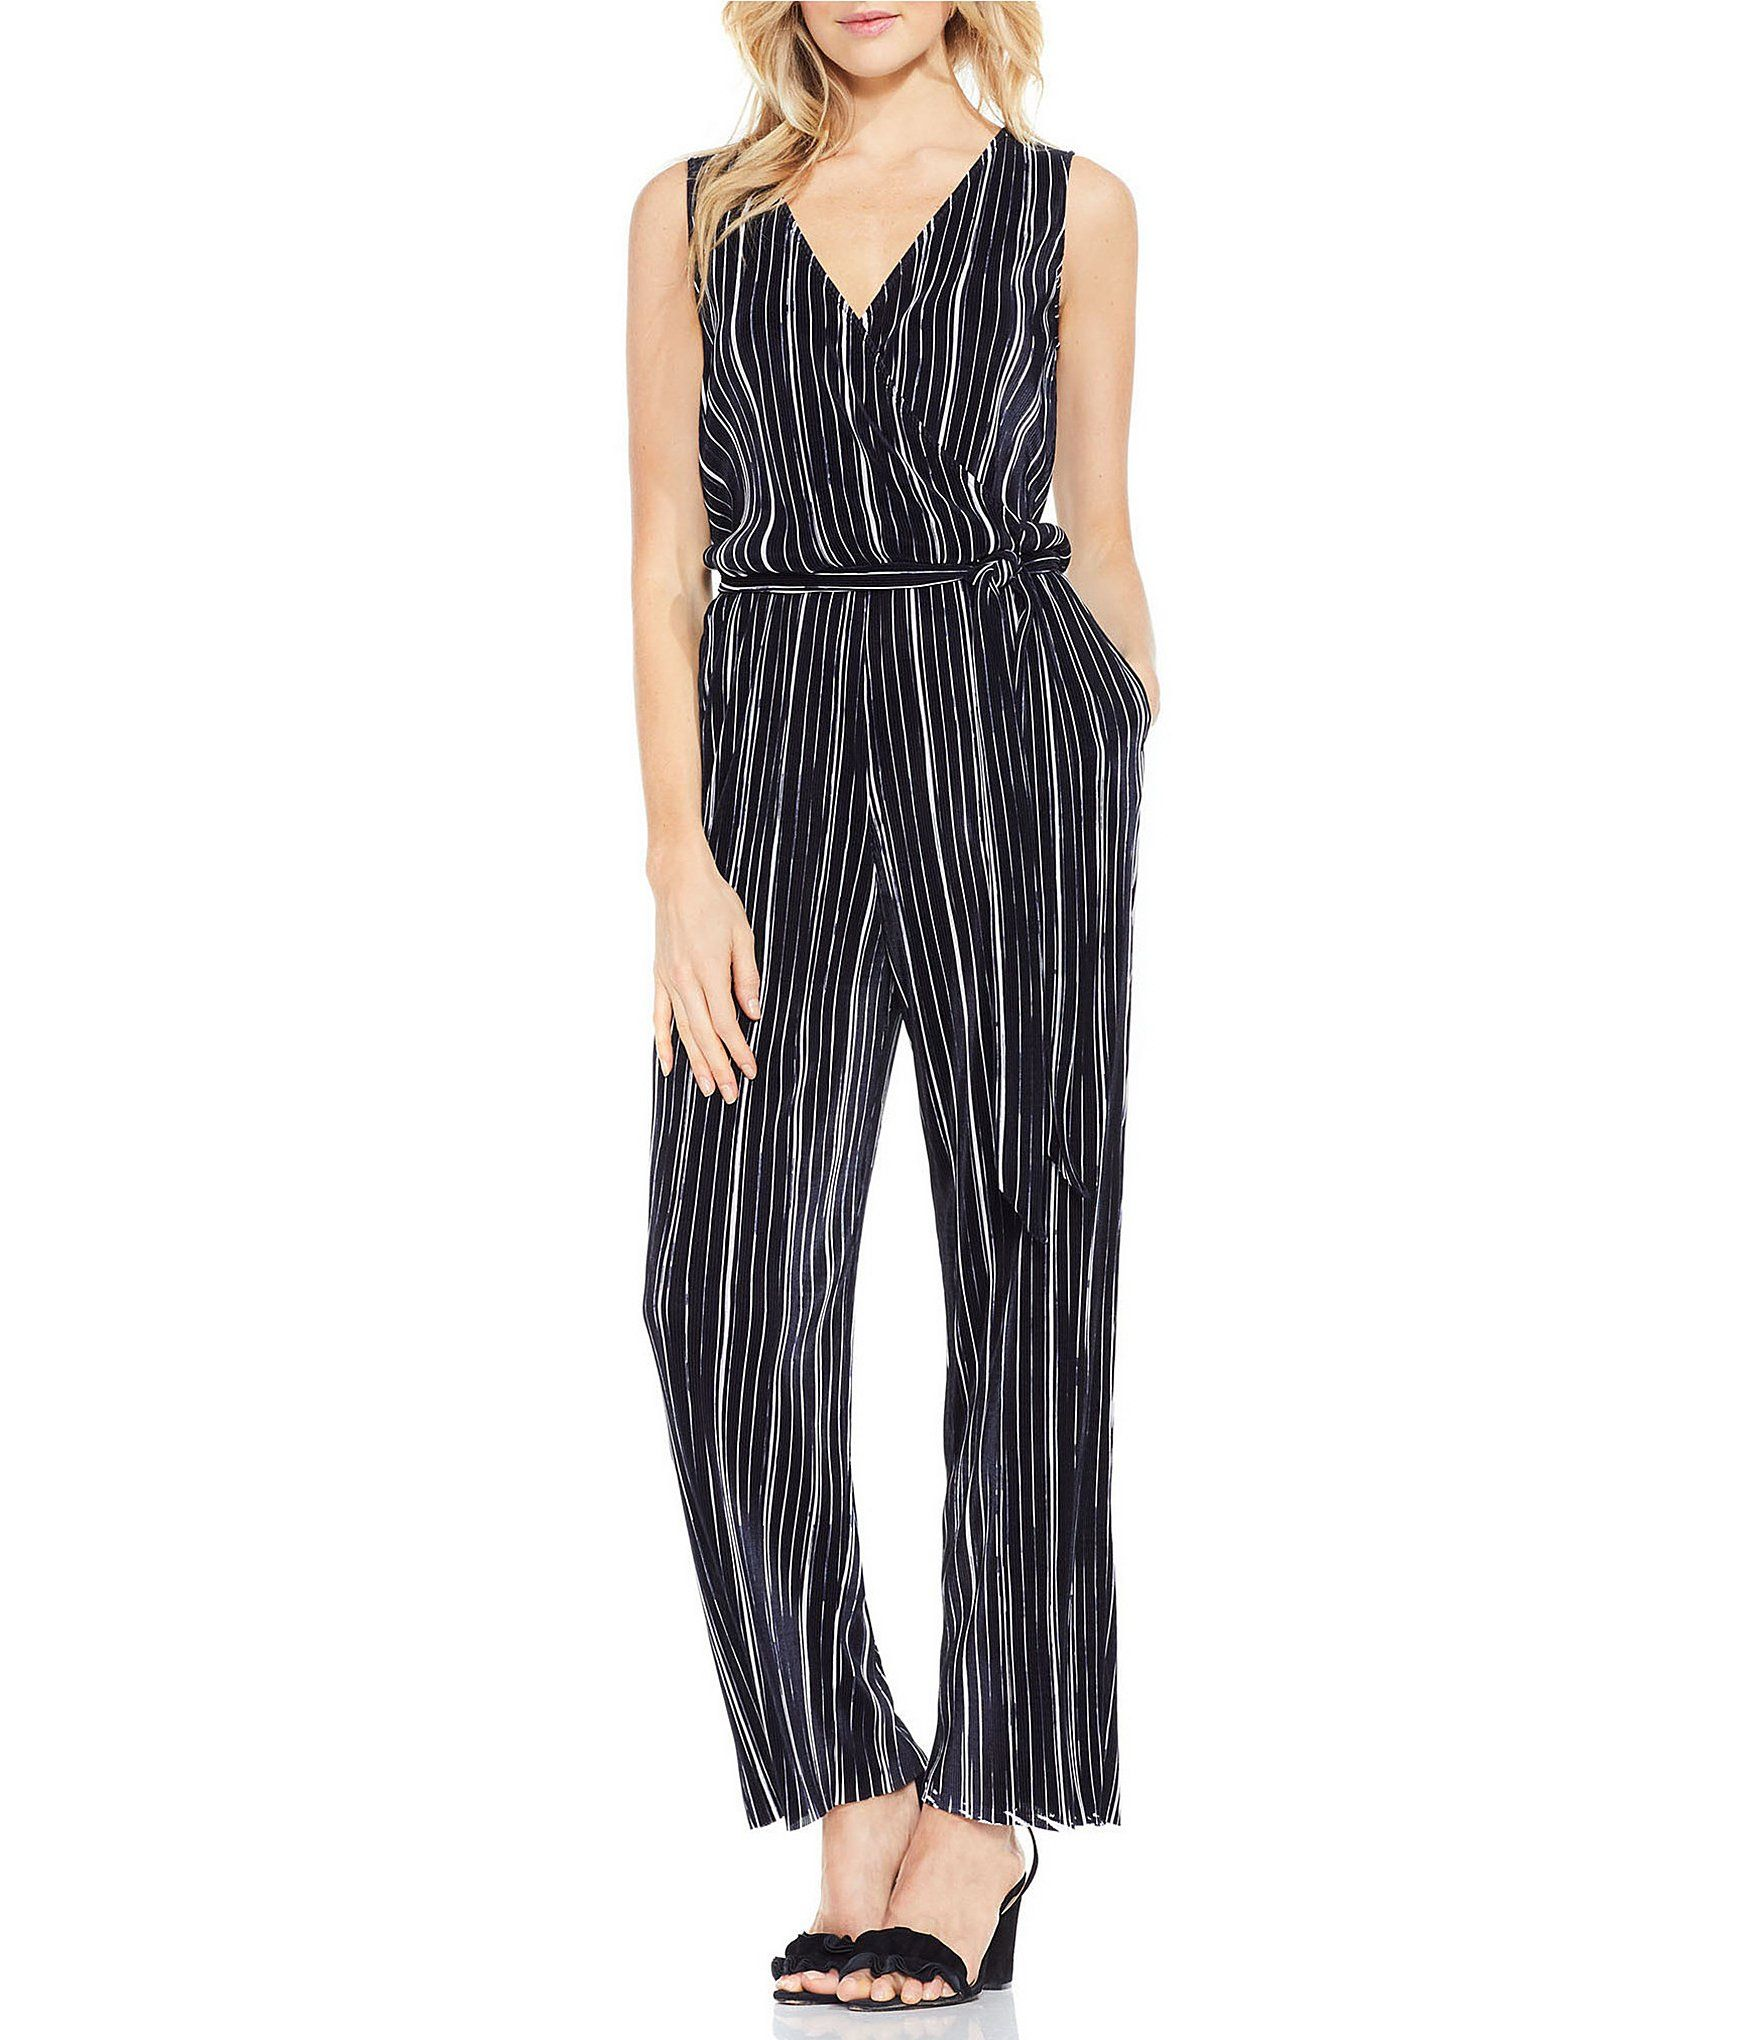 7f2f545a037a Vince Camuto Pleated Knit Belted Jumpsuit  Dillards